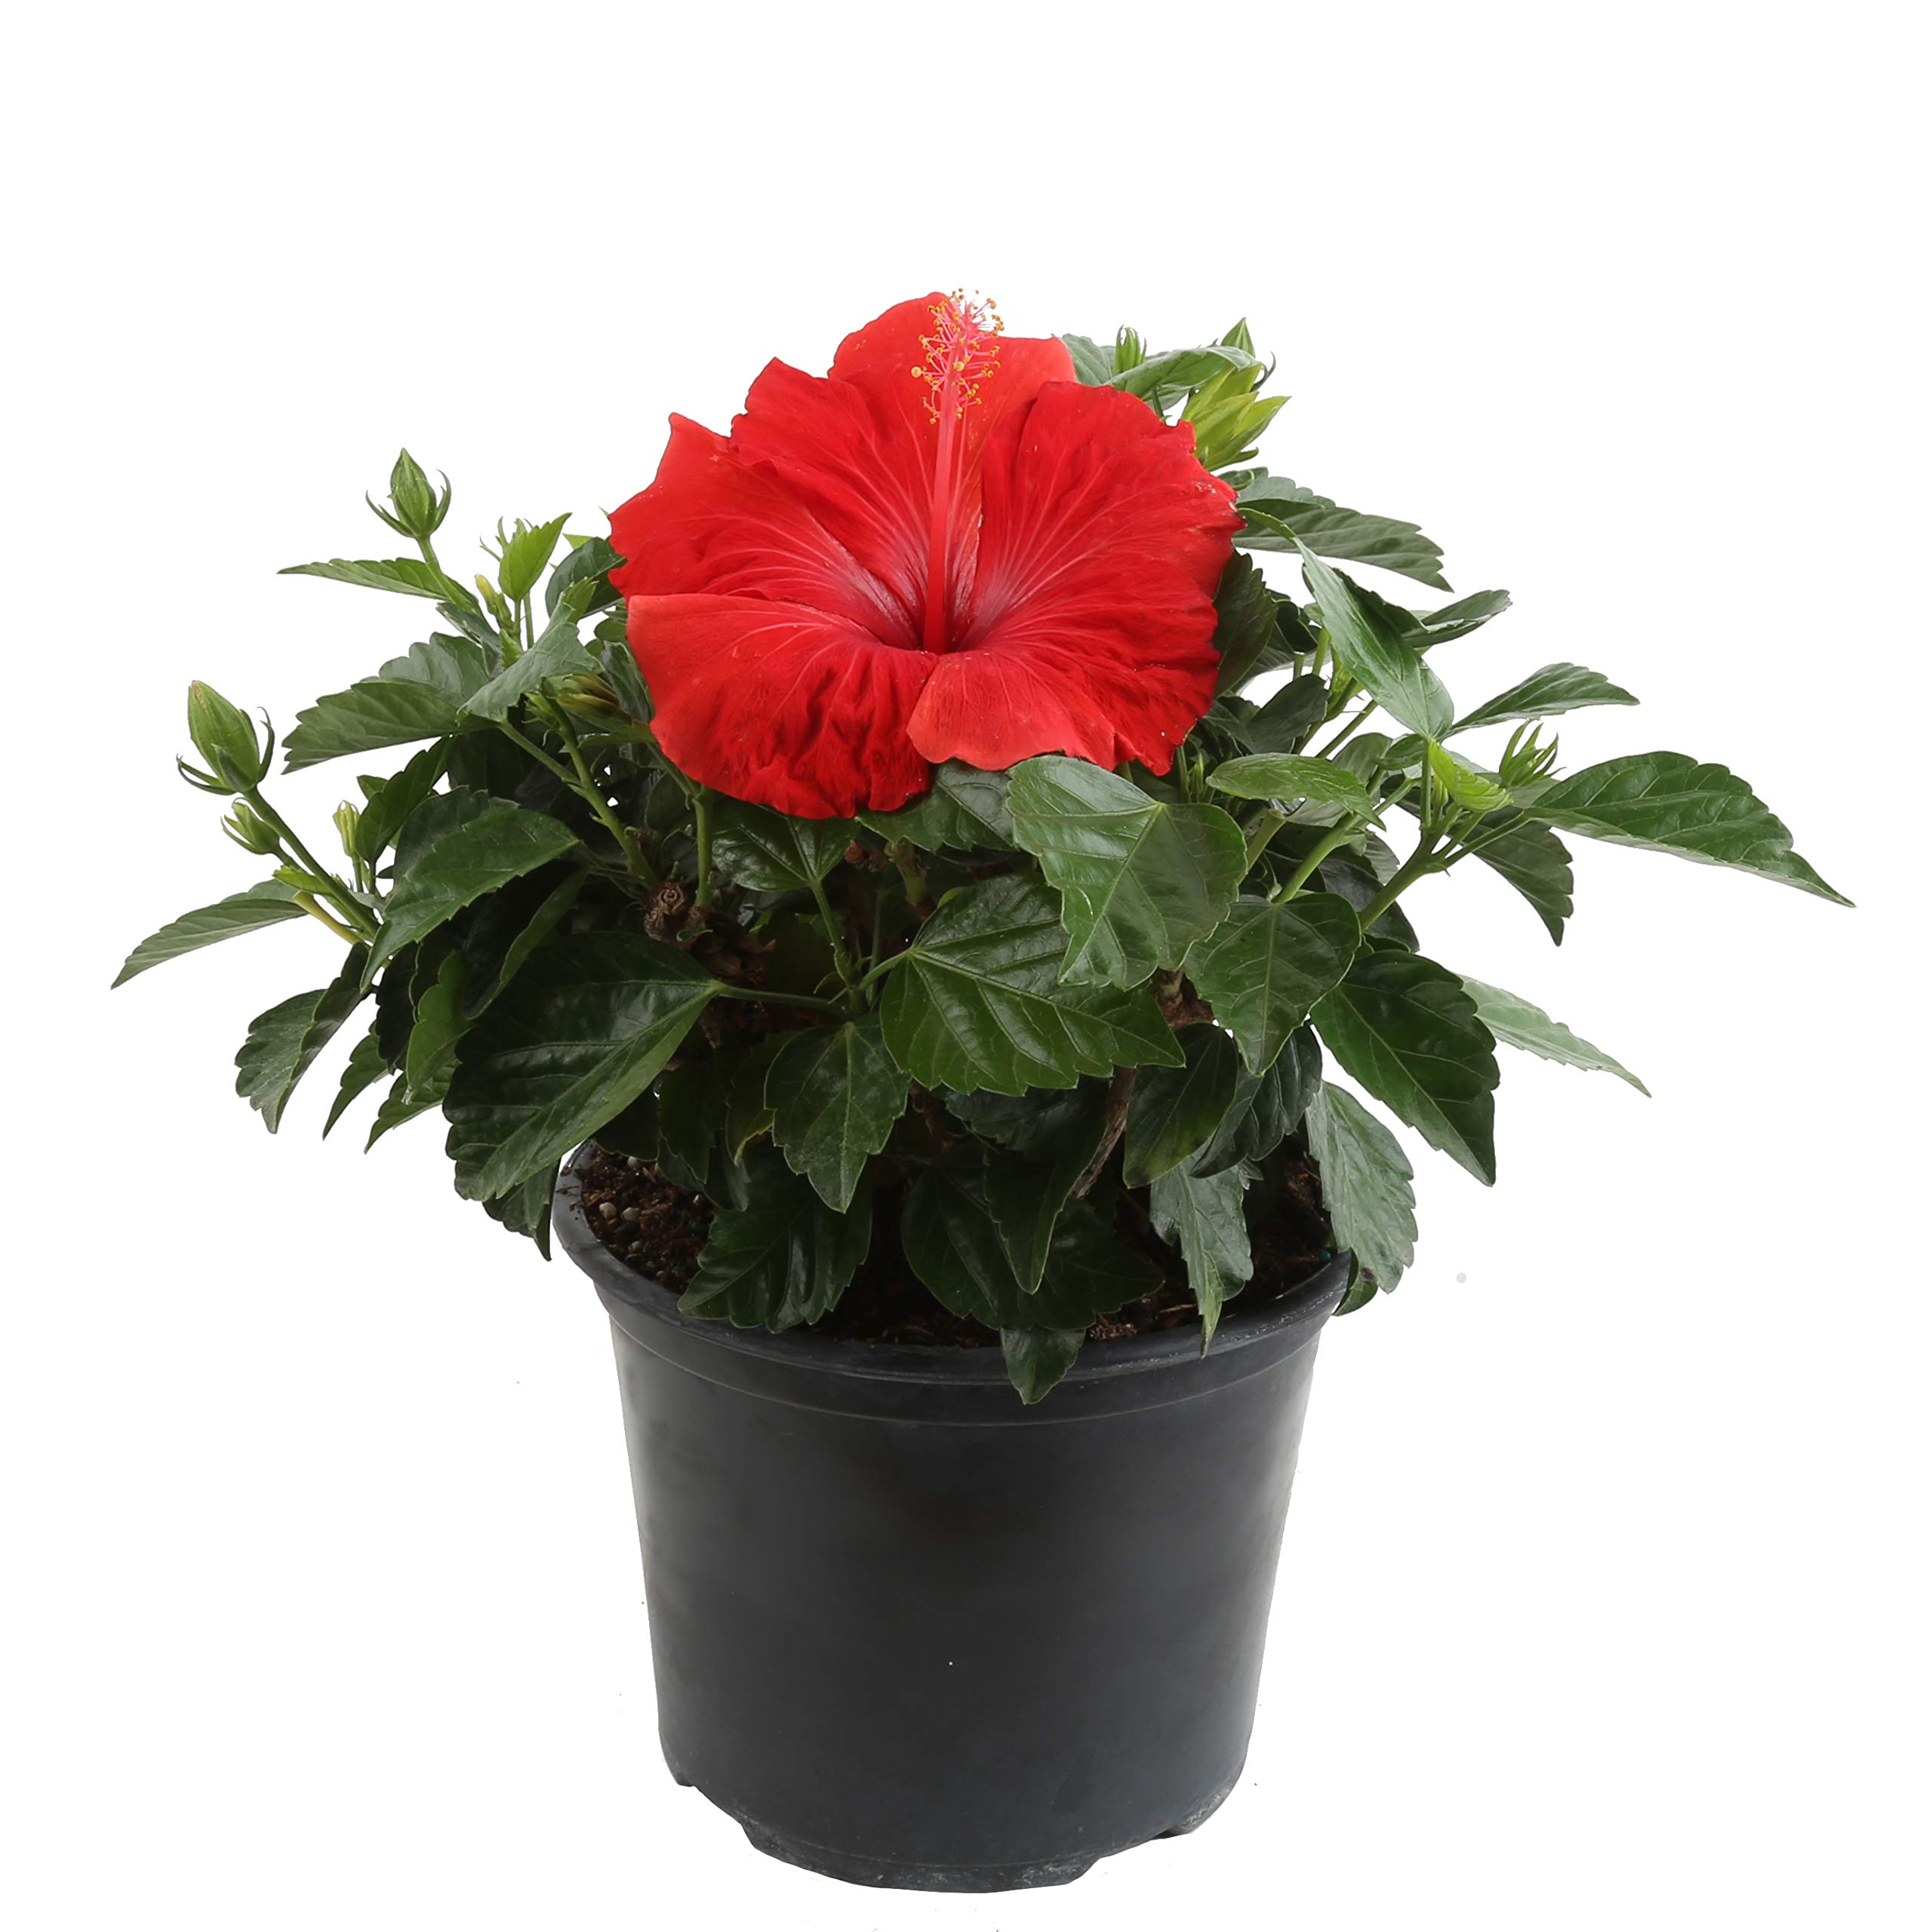 Costa Farms Live Hibiscus Outdoor Plant in in 1 QT Grower Pot, 1QT 4-Pack, Red by Costa Farms (Image #2)